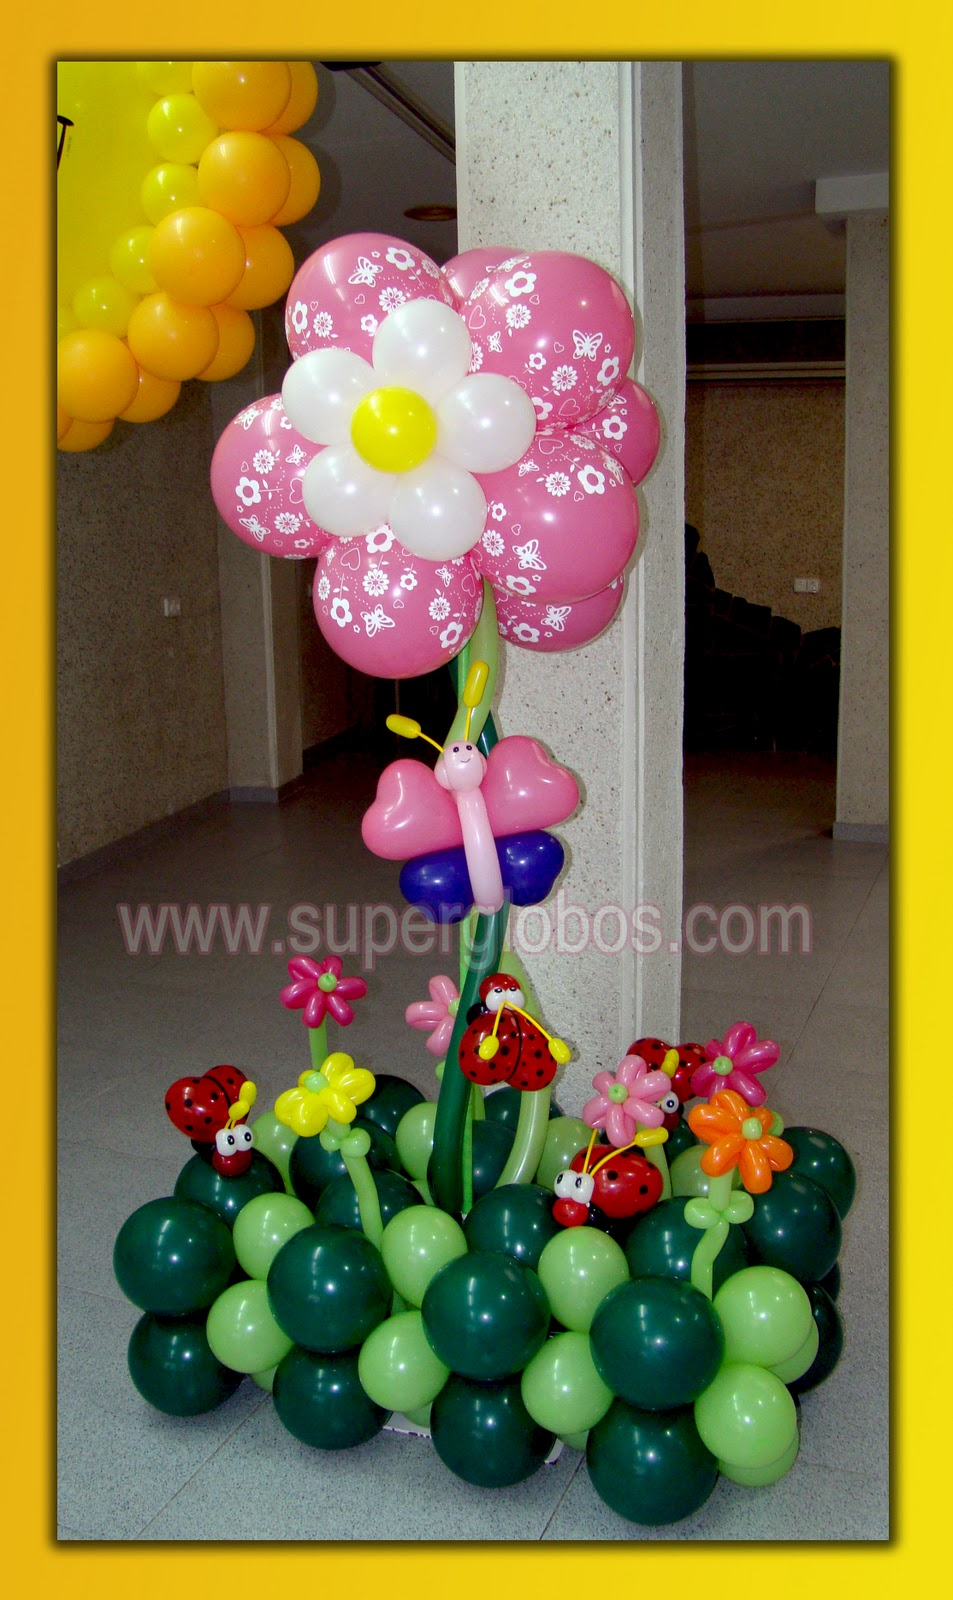 Dise os con globos para fiestas infantiles decoraci n for Decoracion simple con globos